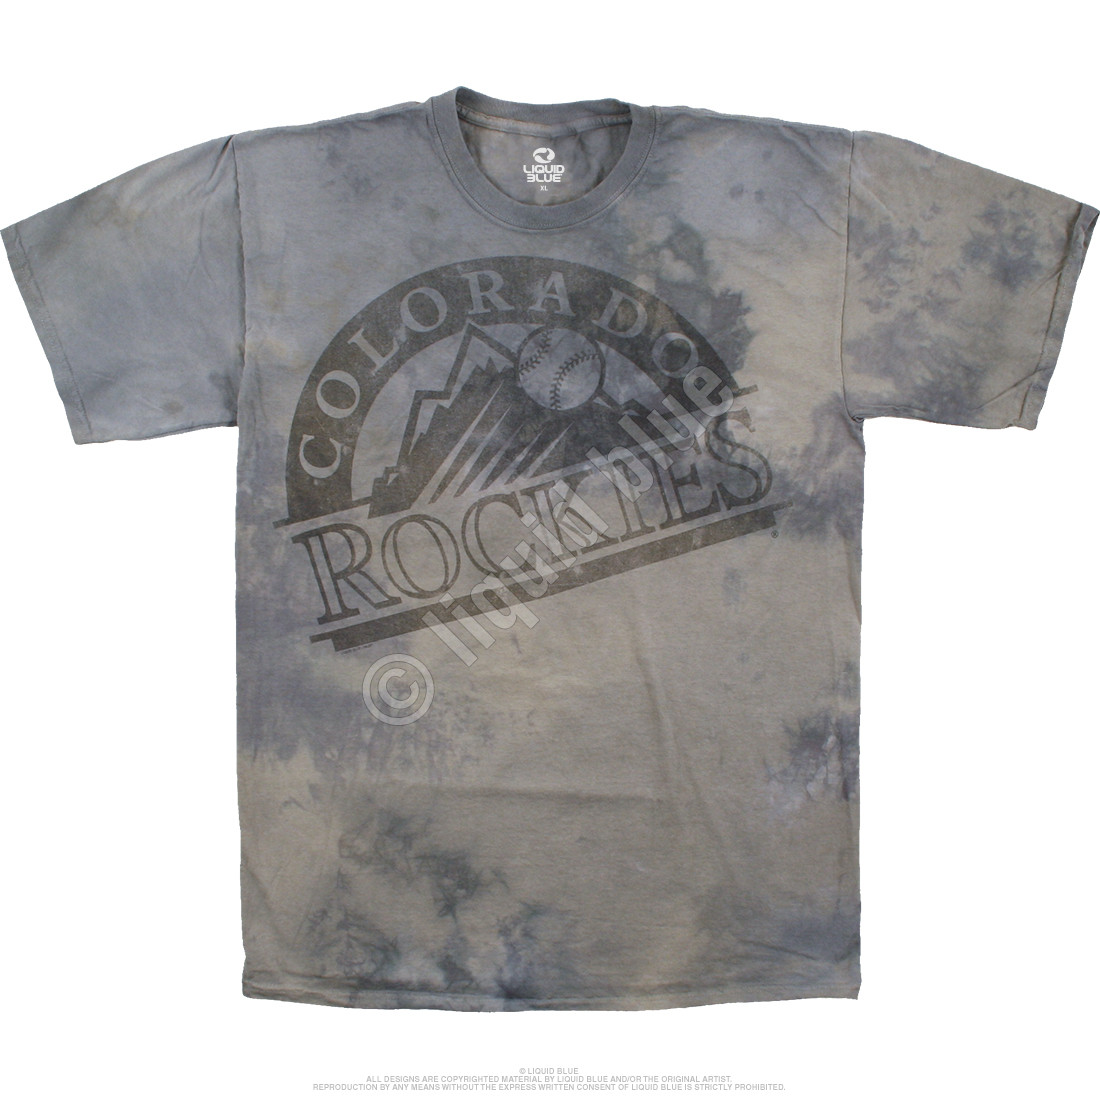 Colorado Rockies Tonal Tie-Dye T-Shirt - Clearance 30% OFF